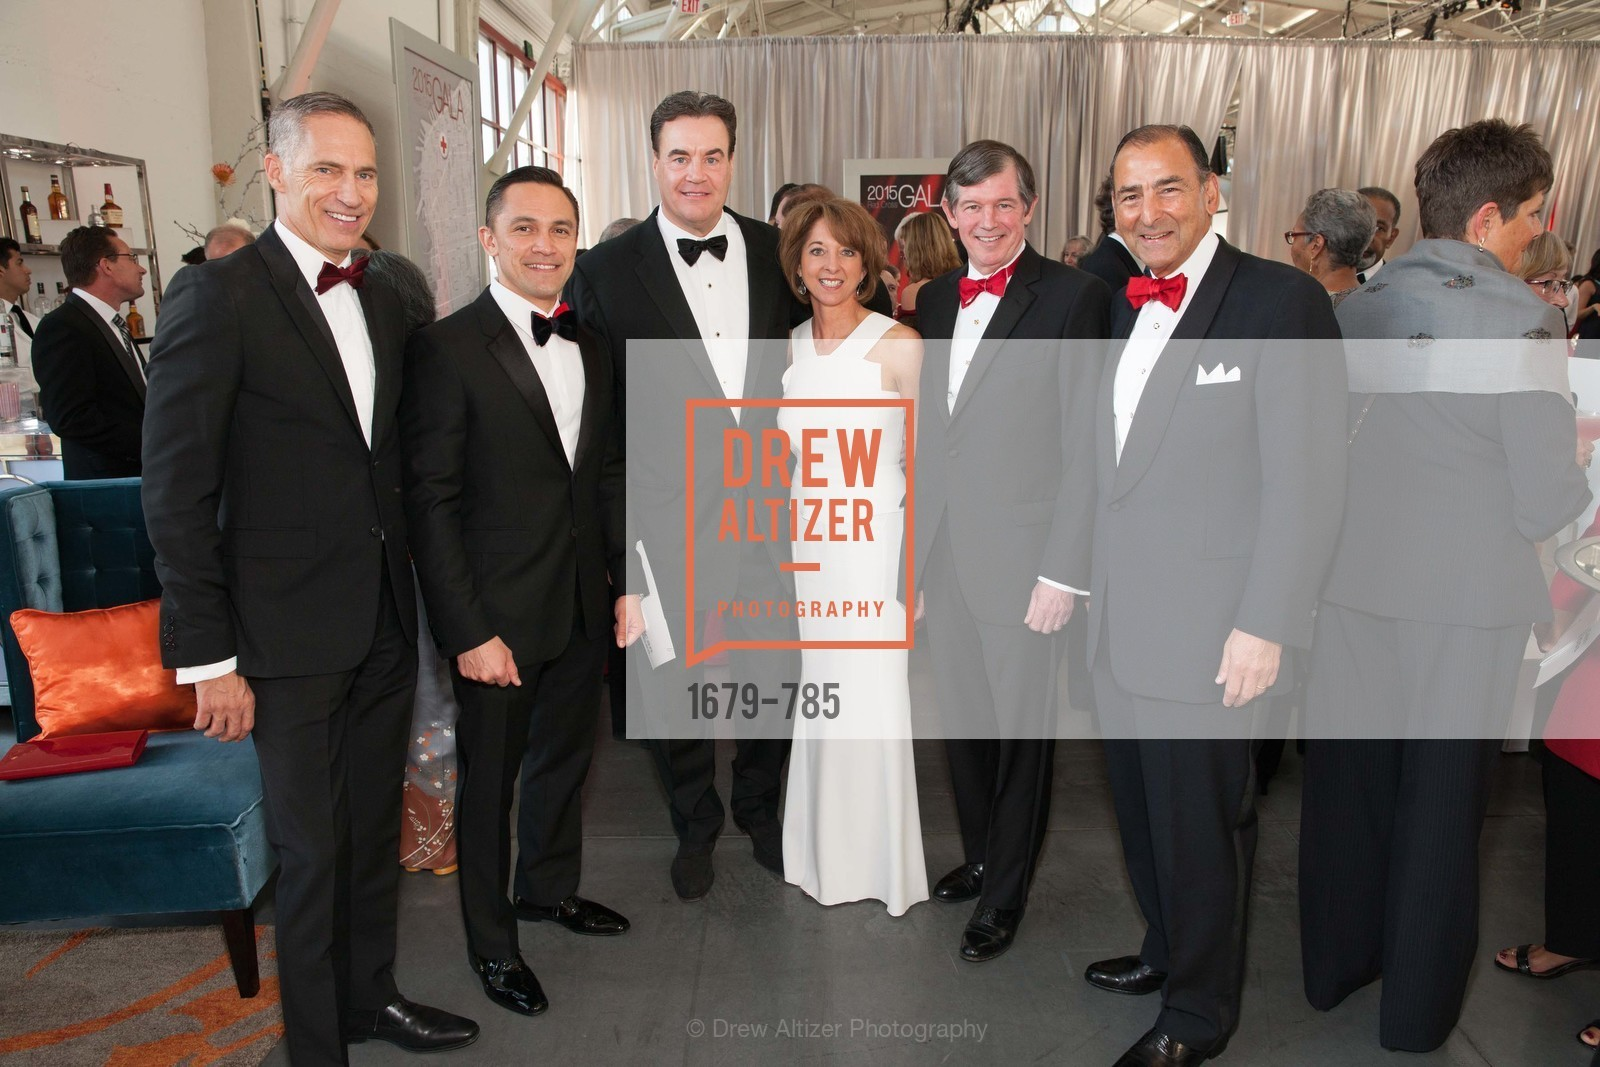 Mark Cloutier, Ezra Garrett, Gail McGovern, Jim Messemer, Teresa Briggs, Anthony Earley, Alexander Mehran, 2015 RED CROSS Gala, US, April 11th, 2015,Drew Altizer, Drew Altizer Photography, full-service agency, private events, San Francisco photographer, photographer california